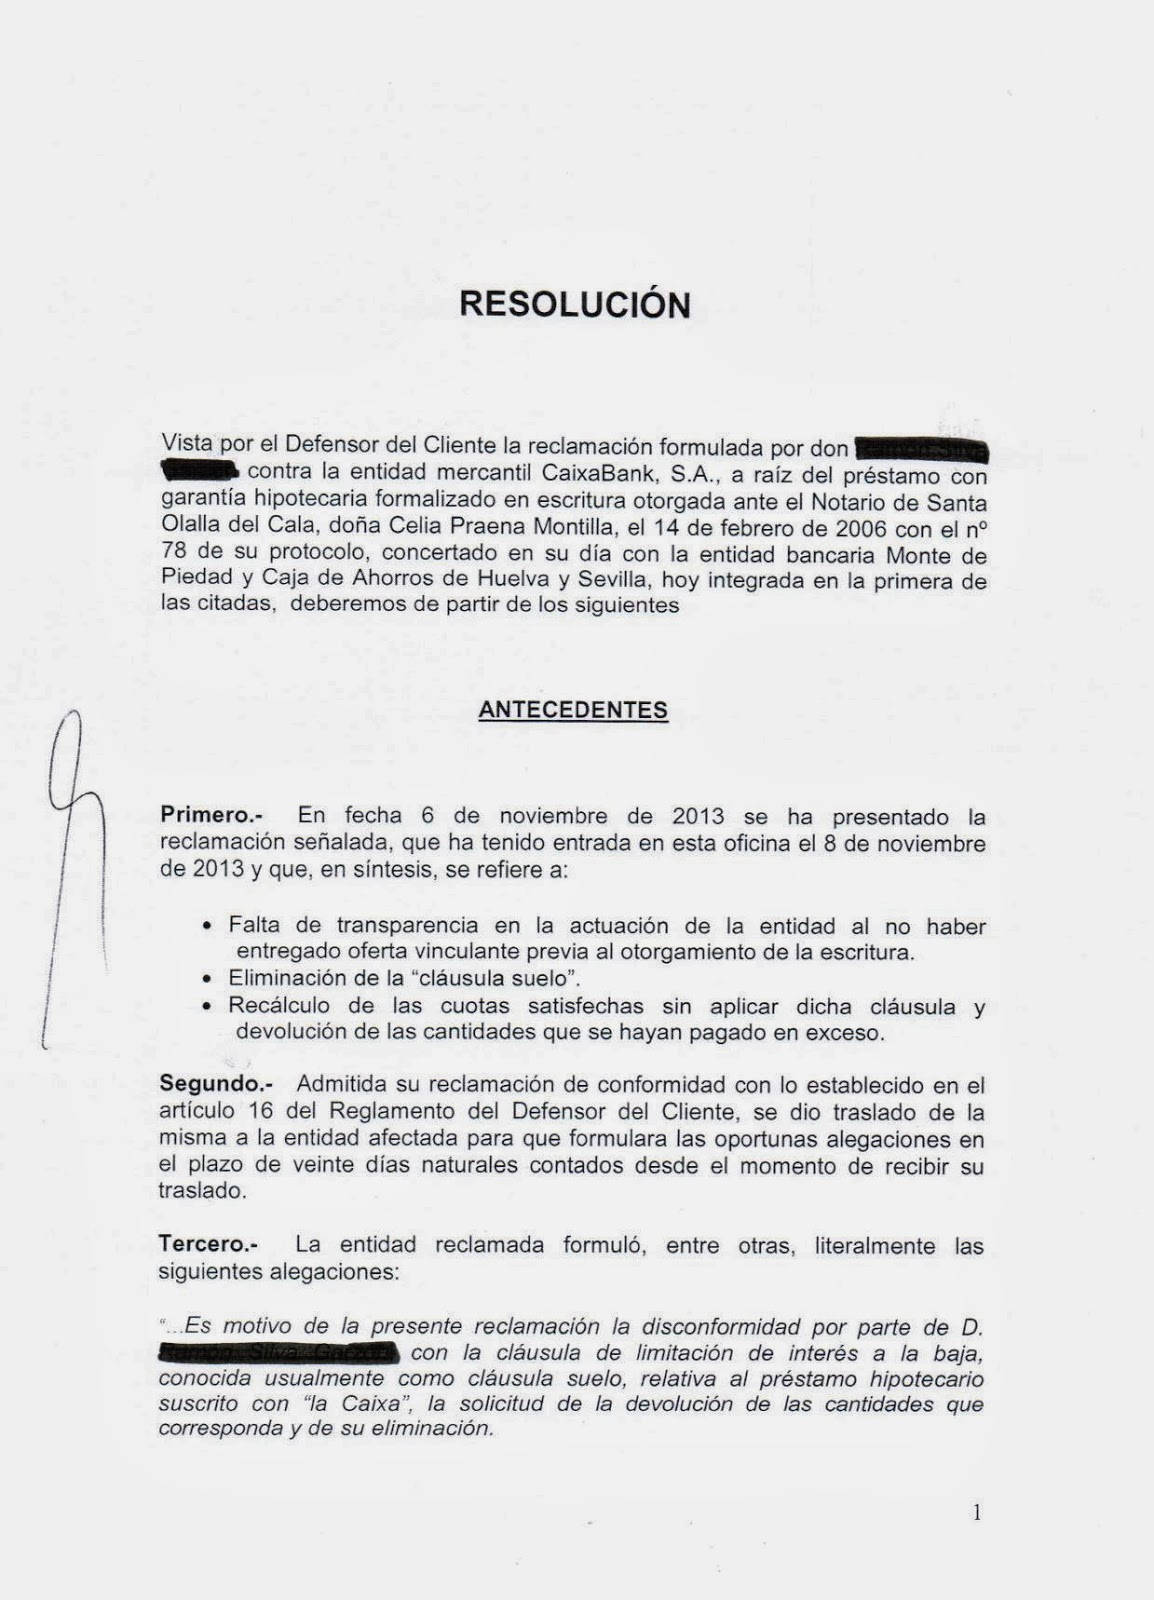 El blog de legalcores enero 2014 for Resolucion clausula suelo